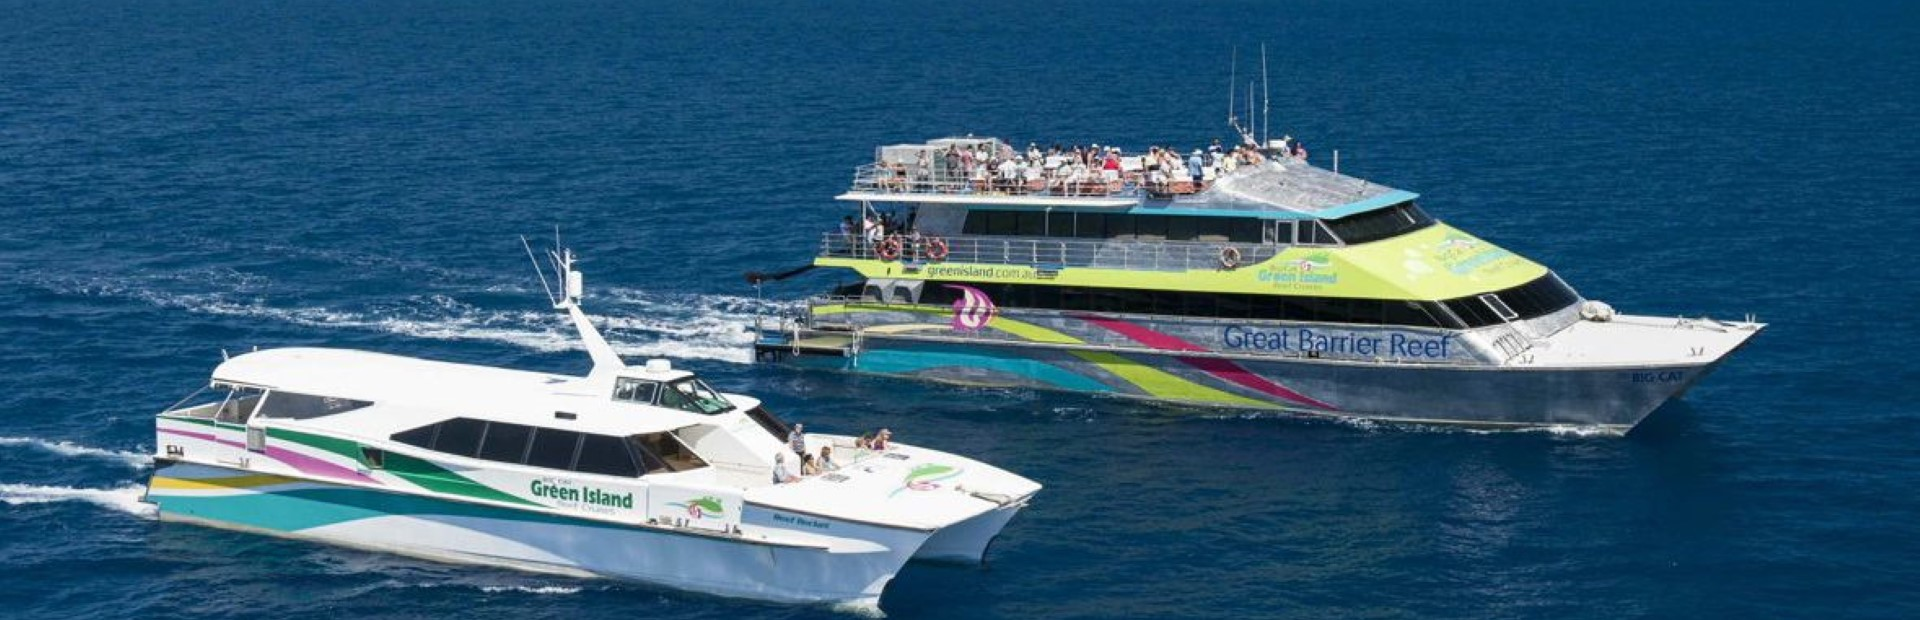 Big Cat Cruise Full Day Green Island Reef Cruise with Standard Inclusion from Reef Terminal FDBC PAK 1